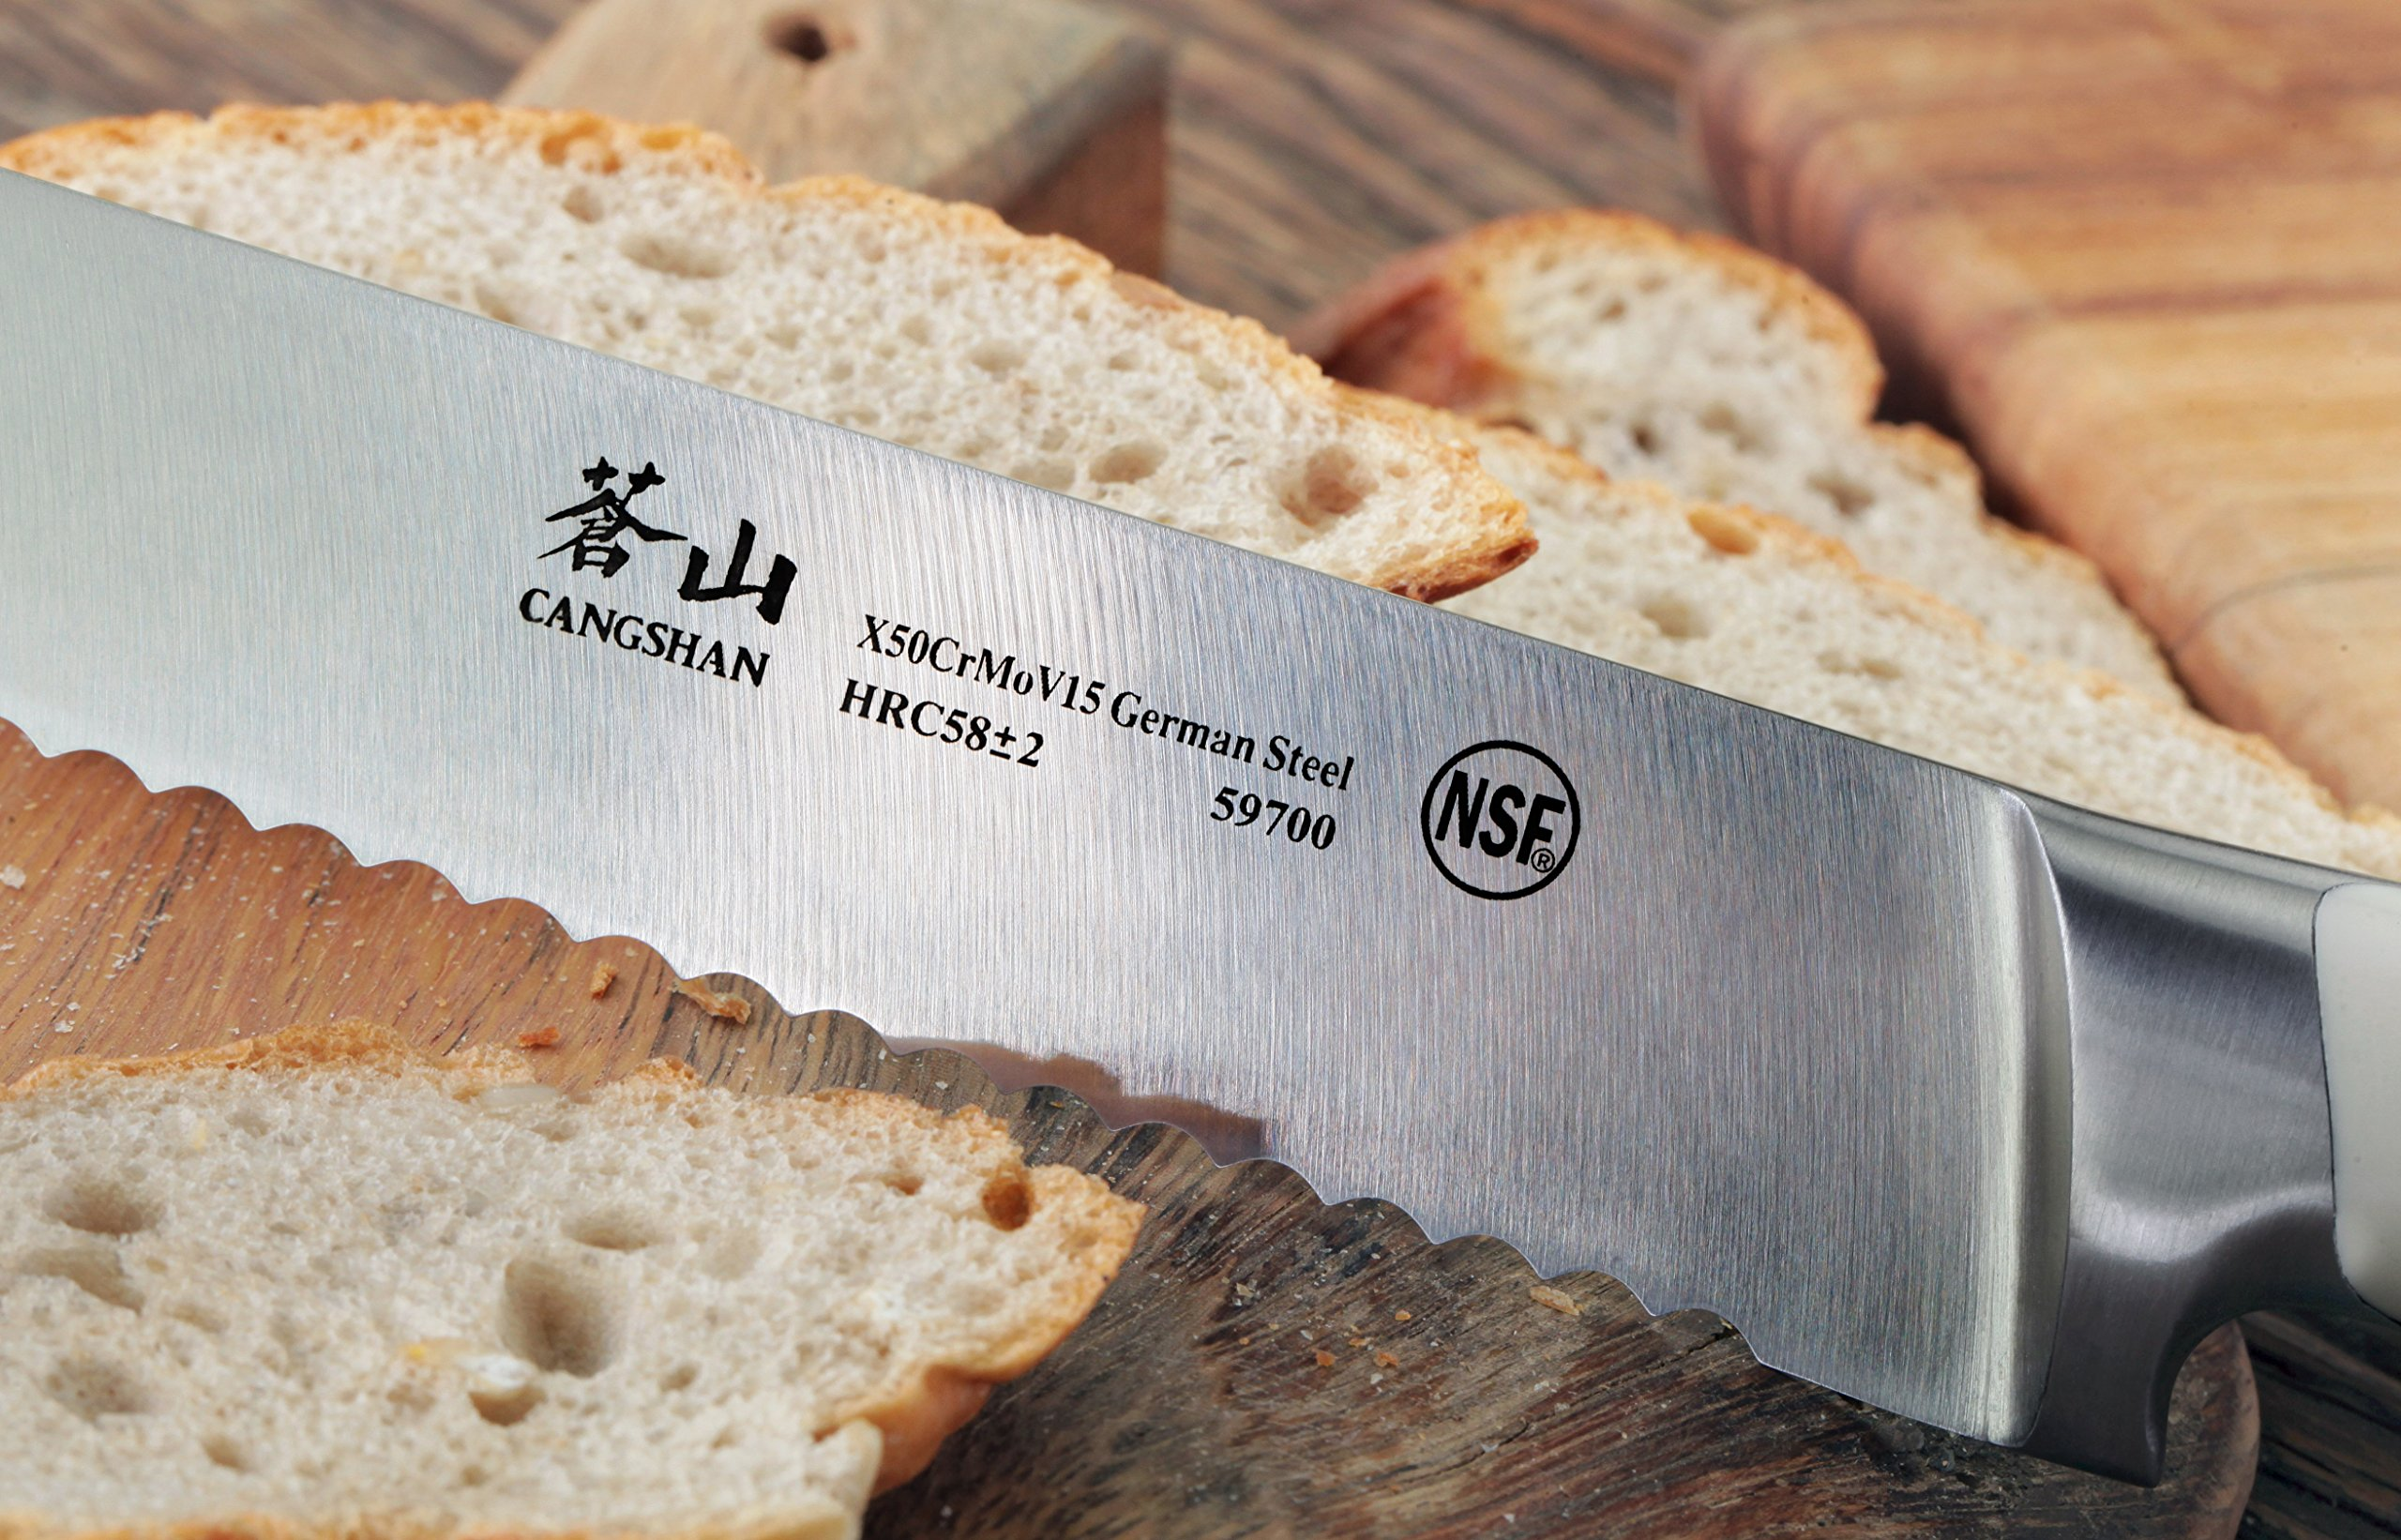 Cangshan S1 Series 59700 German Steel Forged Bread Knife, 8-Inch 5 Patent Pending Design knives that focuses on ergonomics handle with unique creme color Well balanced 5.5-inch handle and 8 blade X50Cr15MoV German Steel with HRC 58 +/- 2 on the Rockwell Hardness Scale